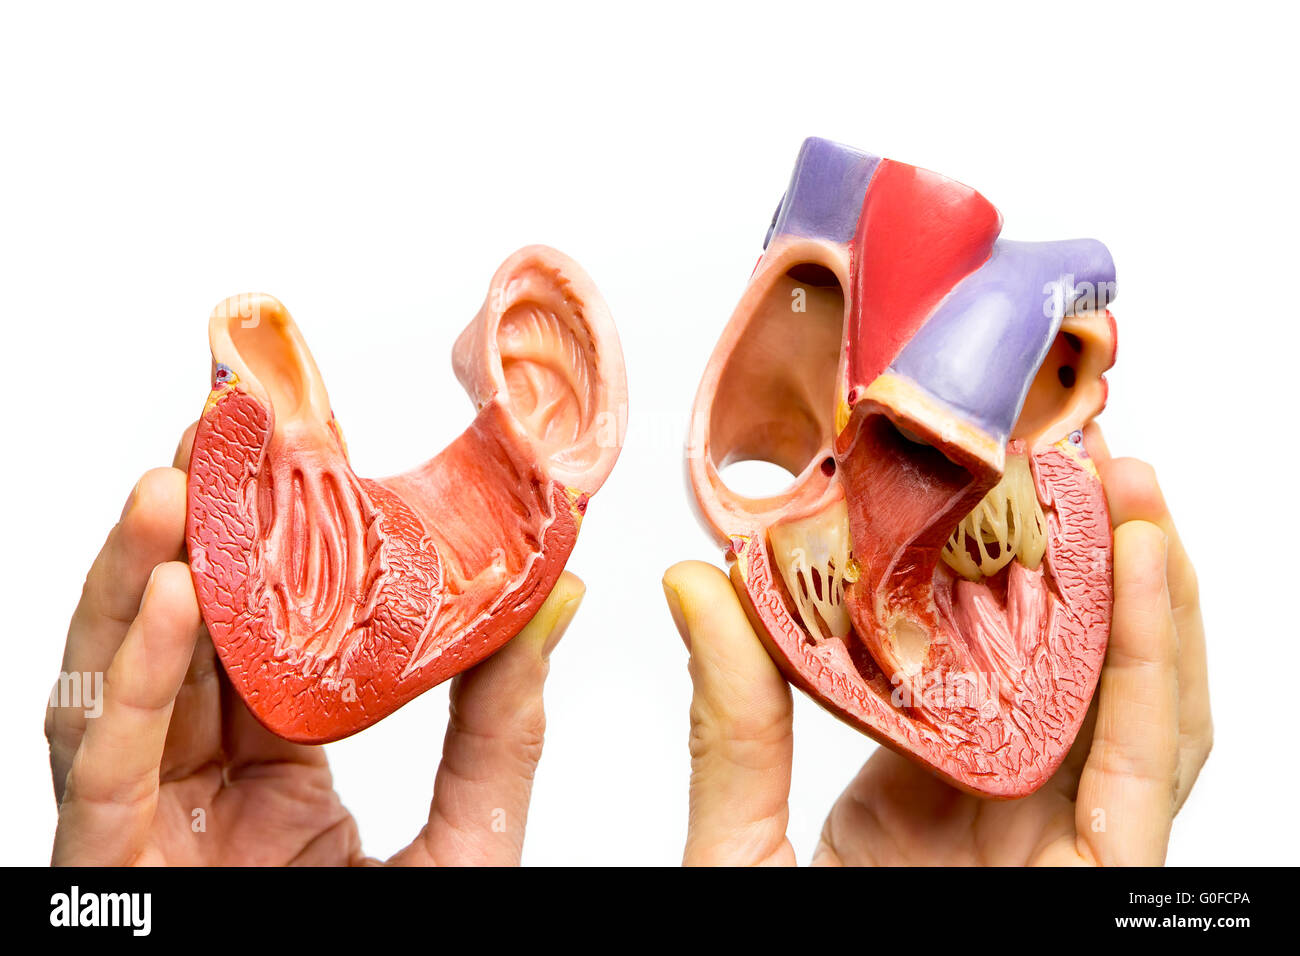 Fingers holding open human heart on white background - Stock Image